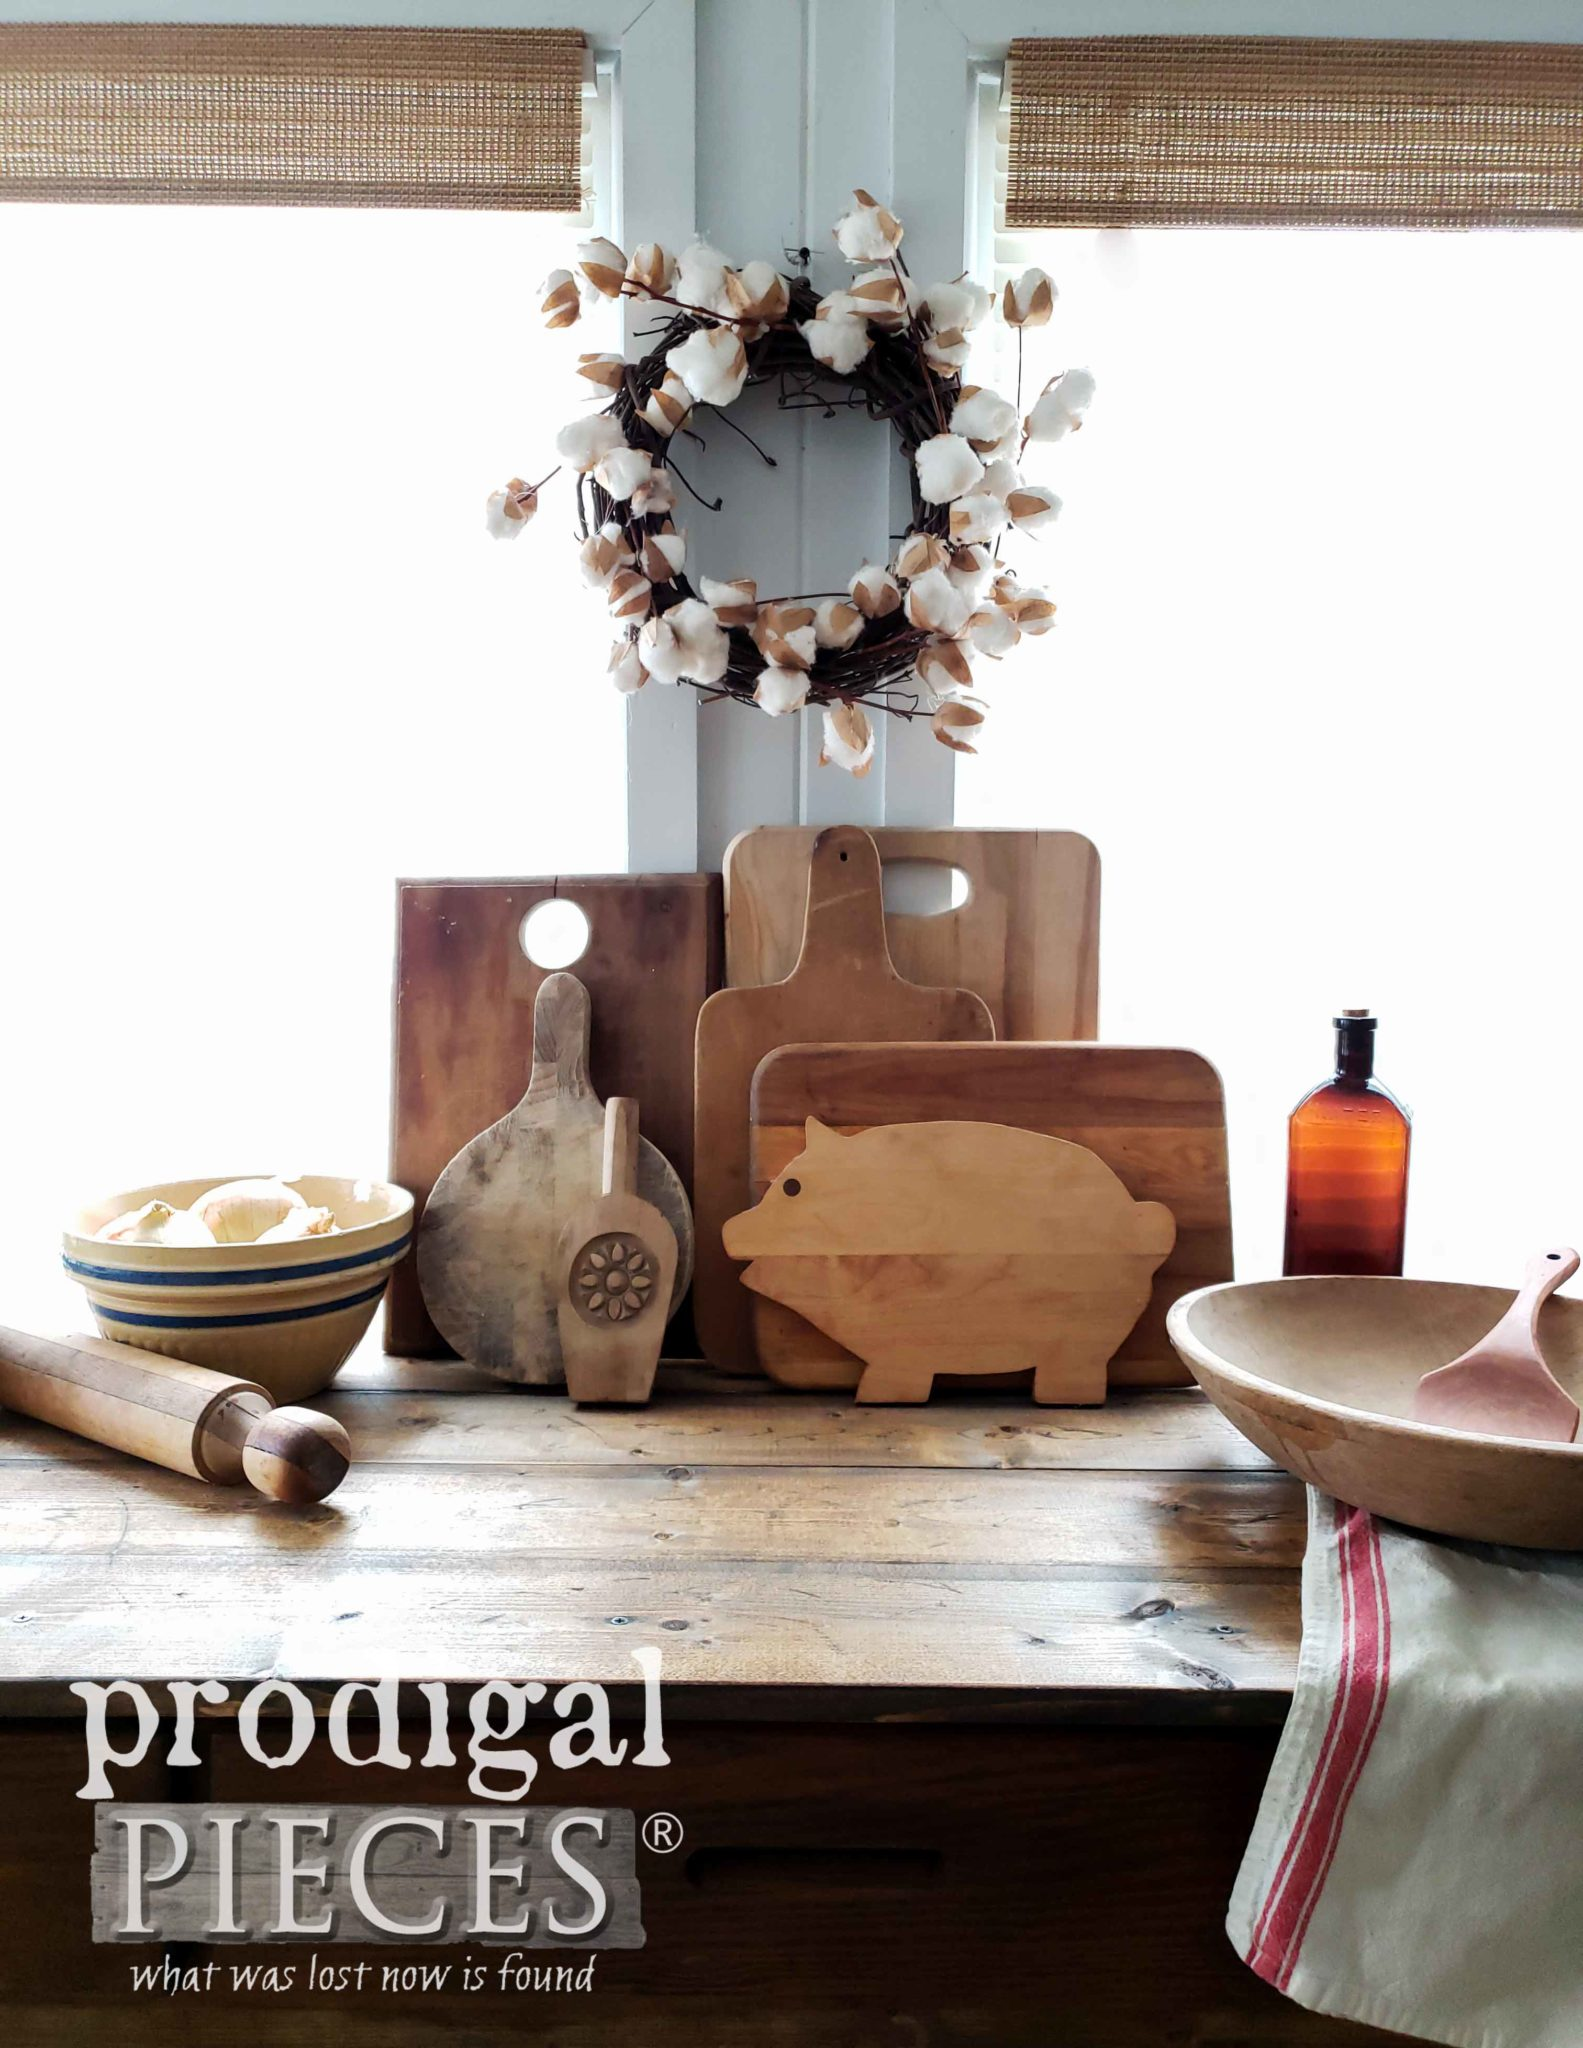 Rustic Farmhouse Kitchen Vignette with Yellow Ware, Cutting Boards, Dough Bowls by Larissa of Prodigal Pieces | Shop at prodigalpieces.com